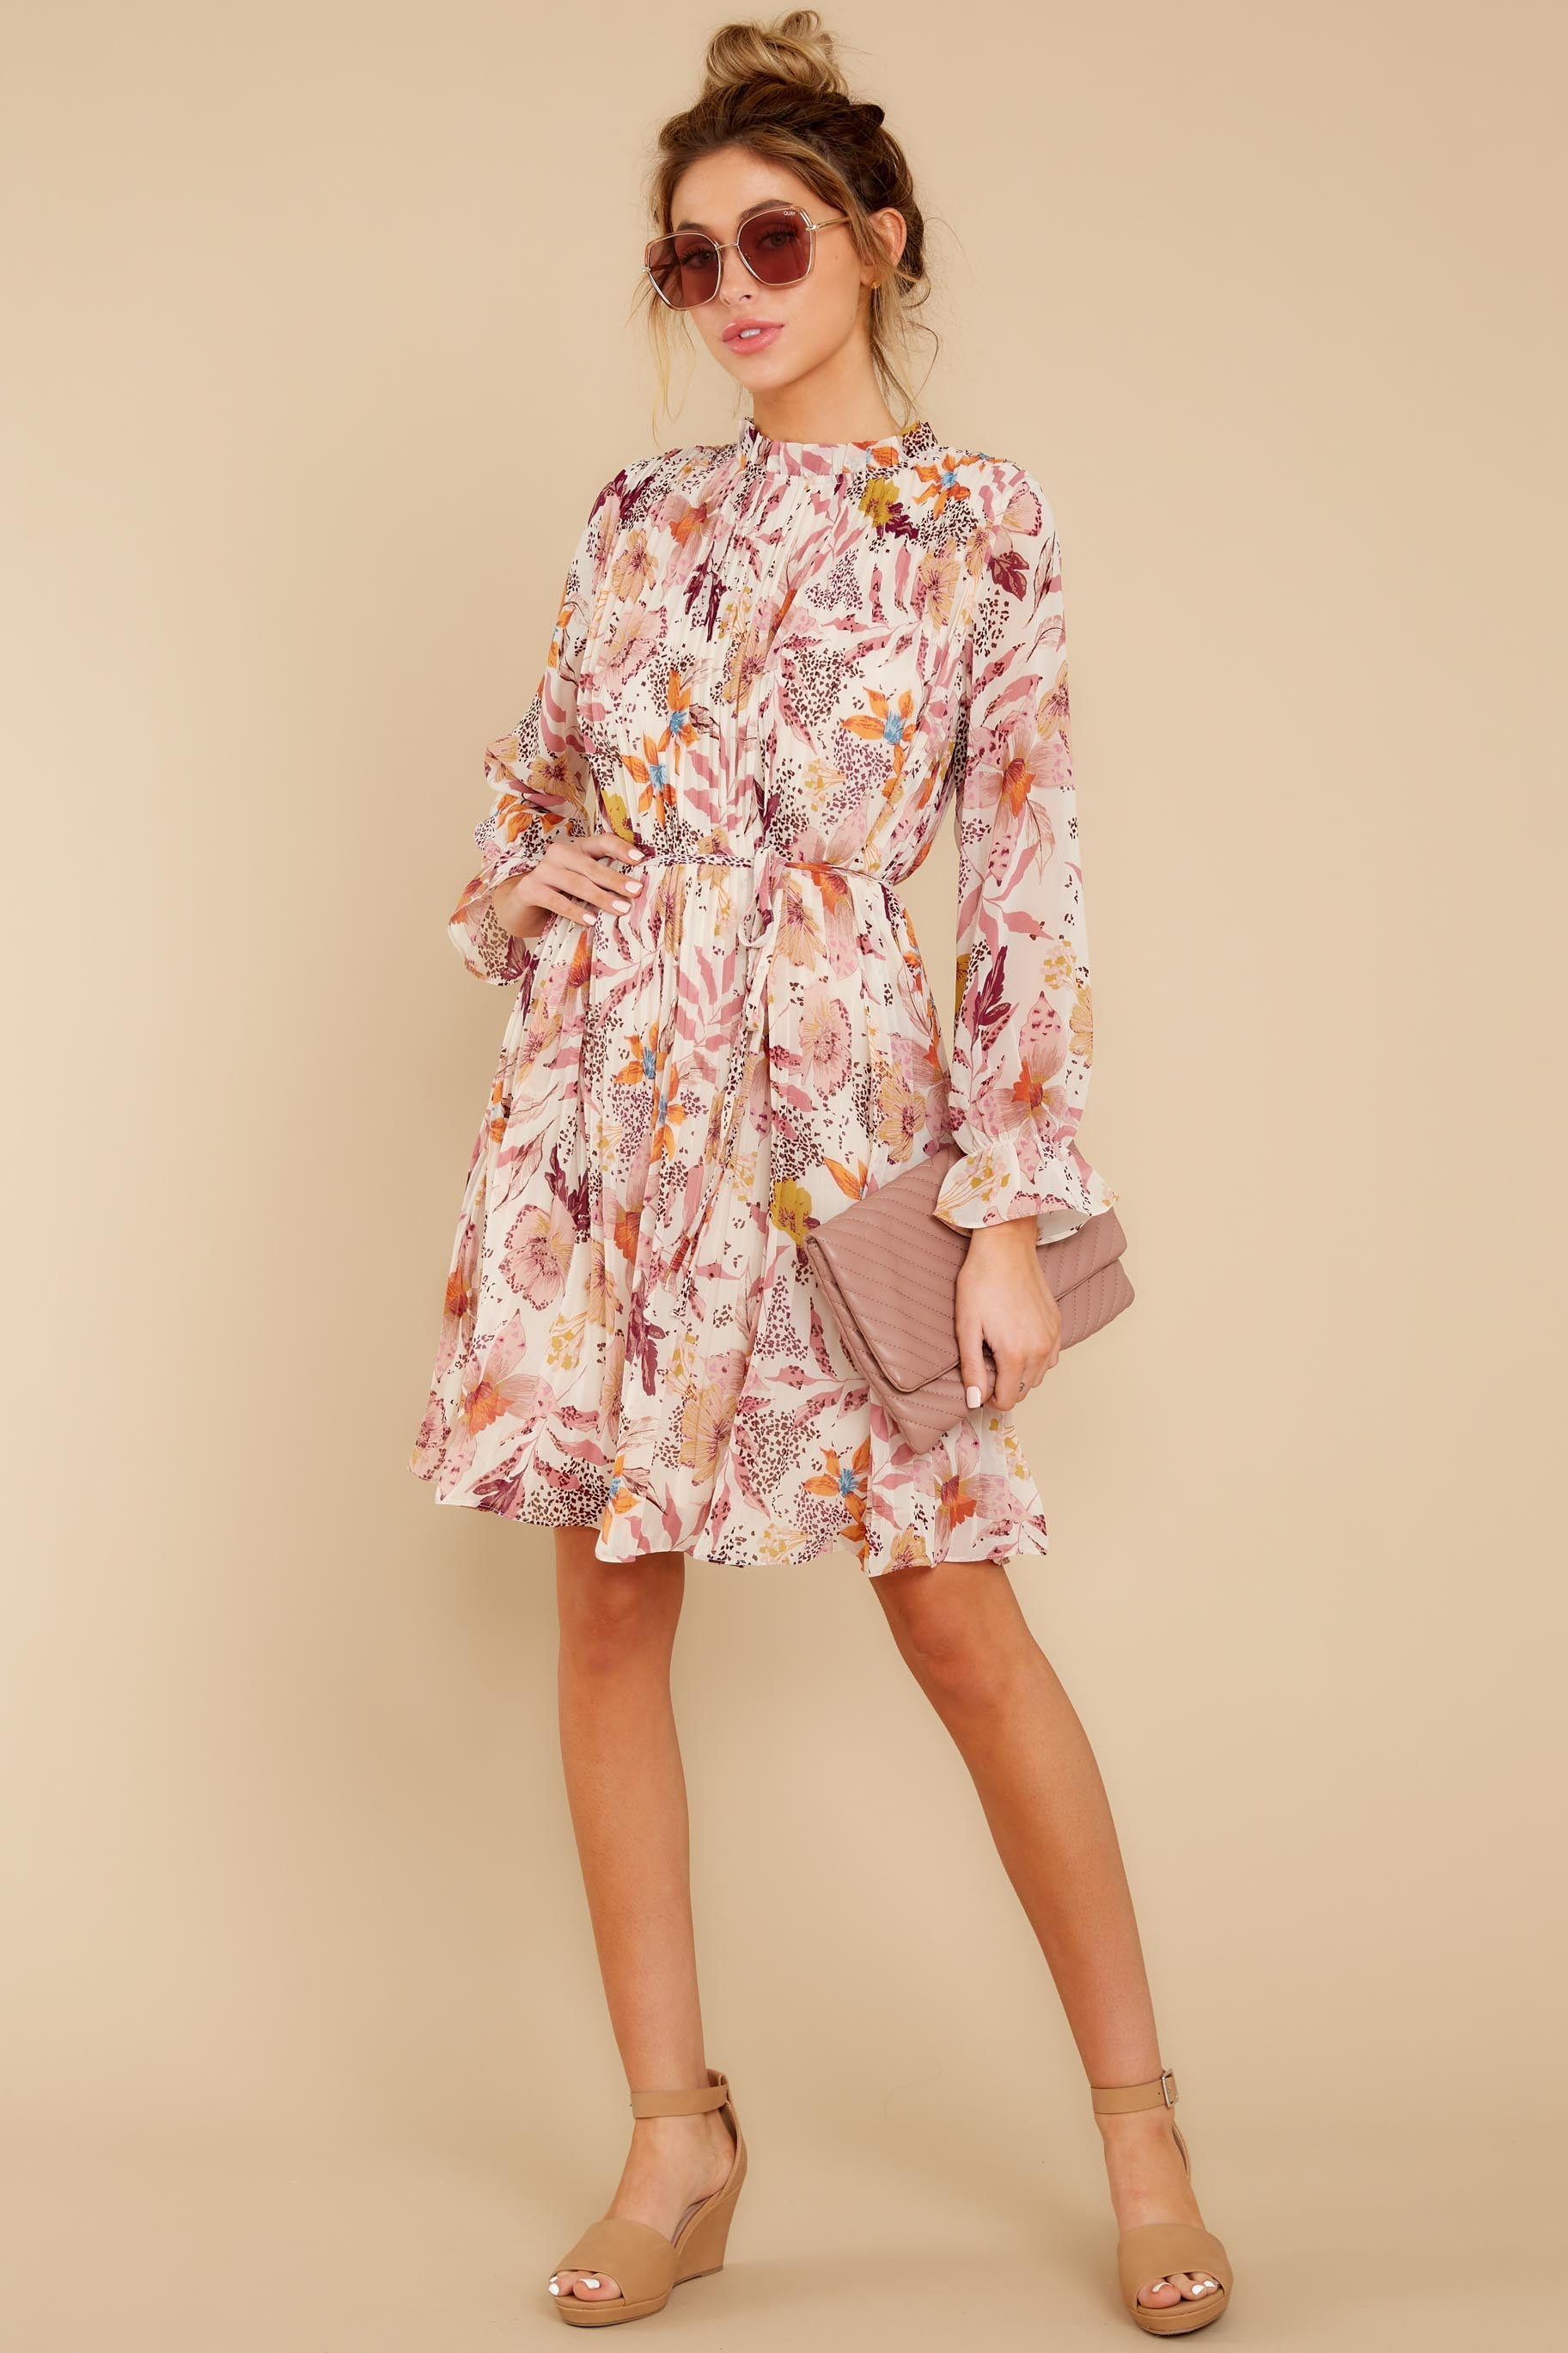 3 Straight For Your Heart Ivory Floral Print Dress at reddressboutique.com